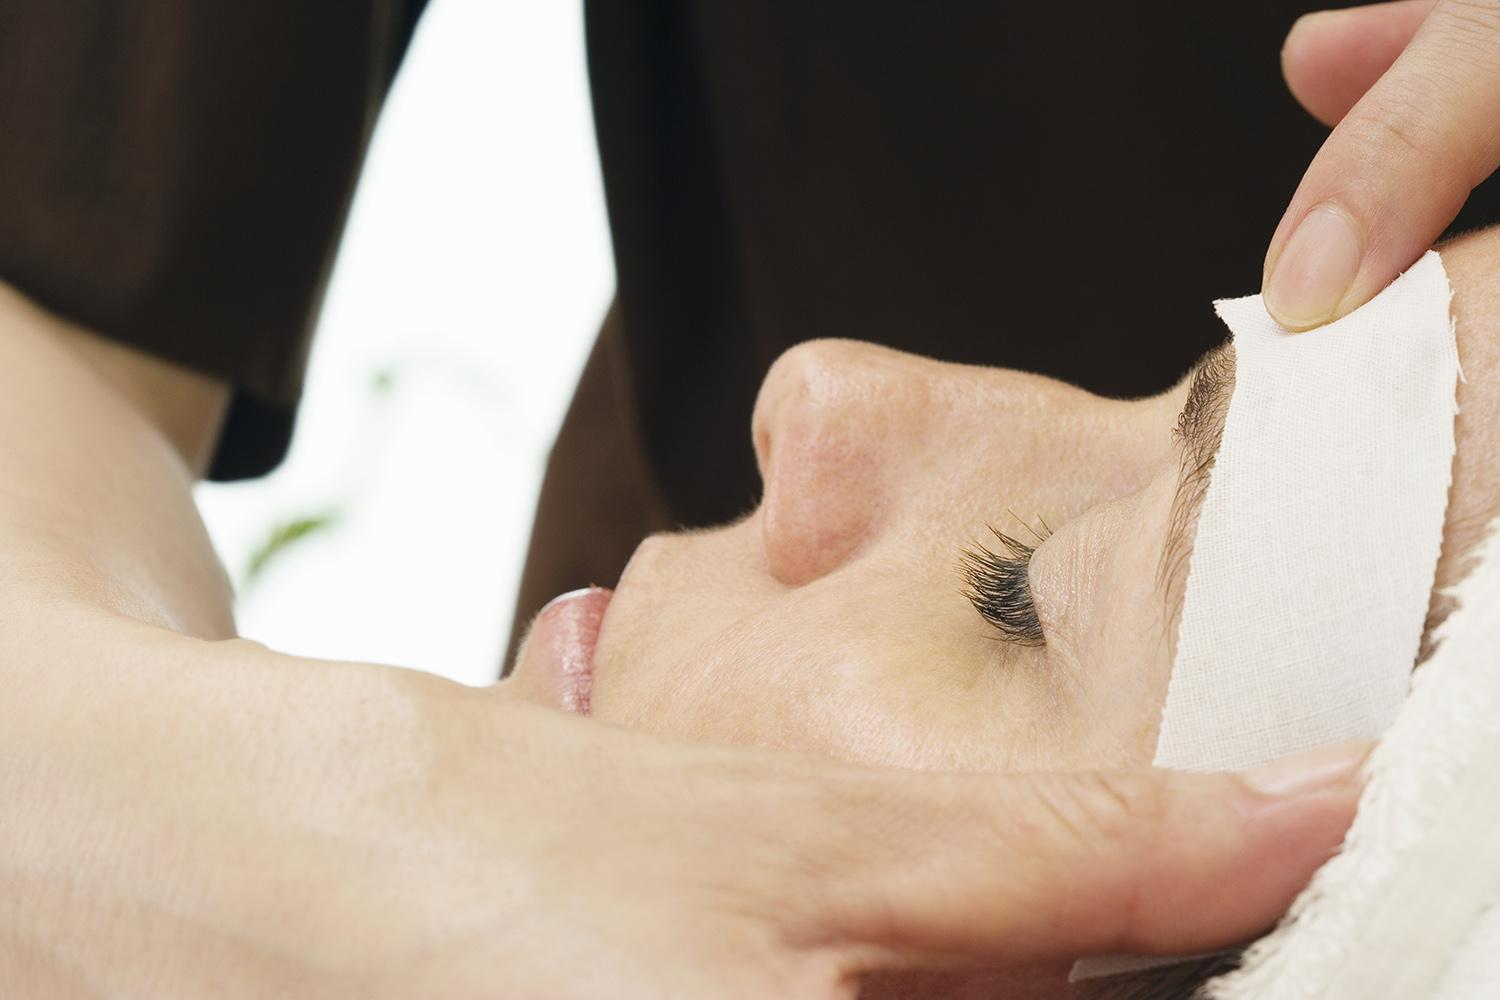 10 things you might not know about waxing: http://t.co/25MN49drbu http://t.co/cIQZCr8k9o